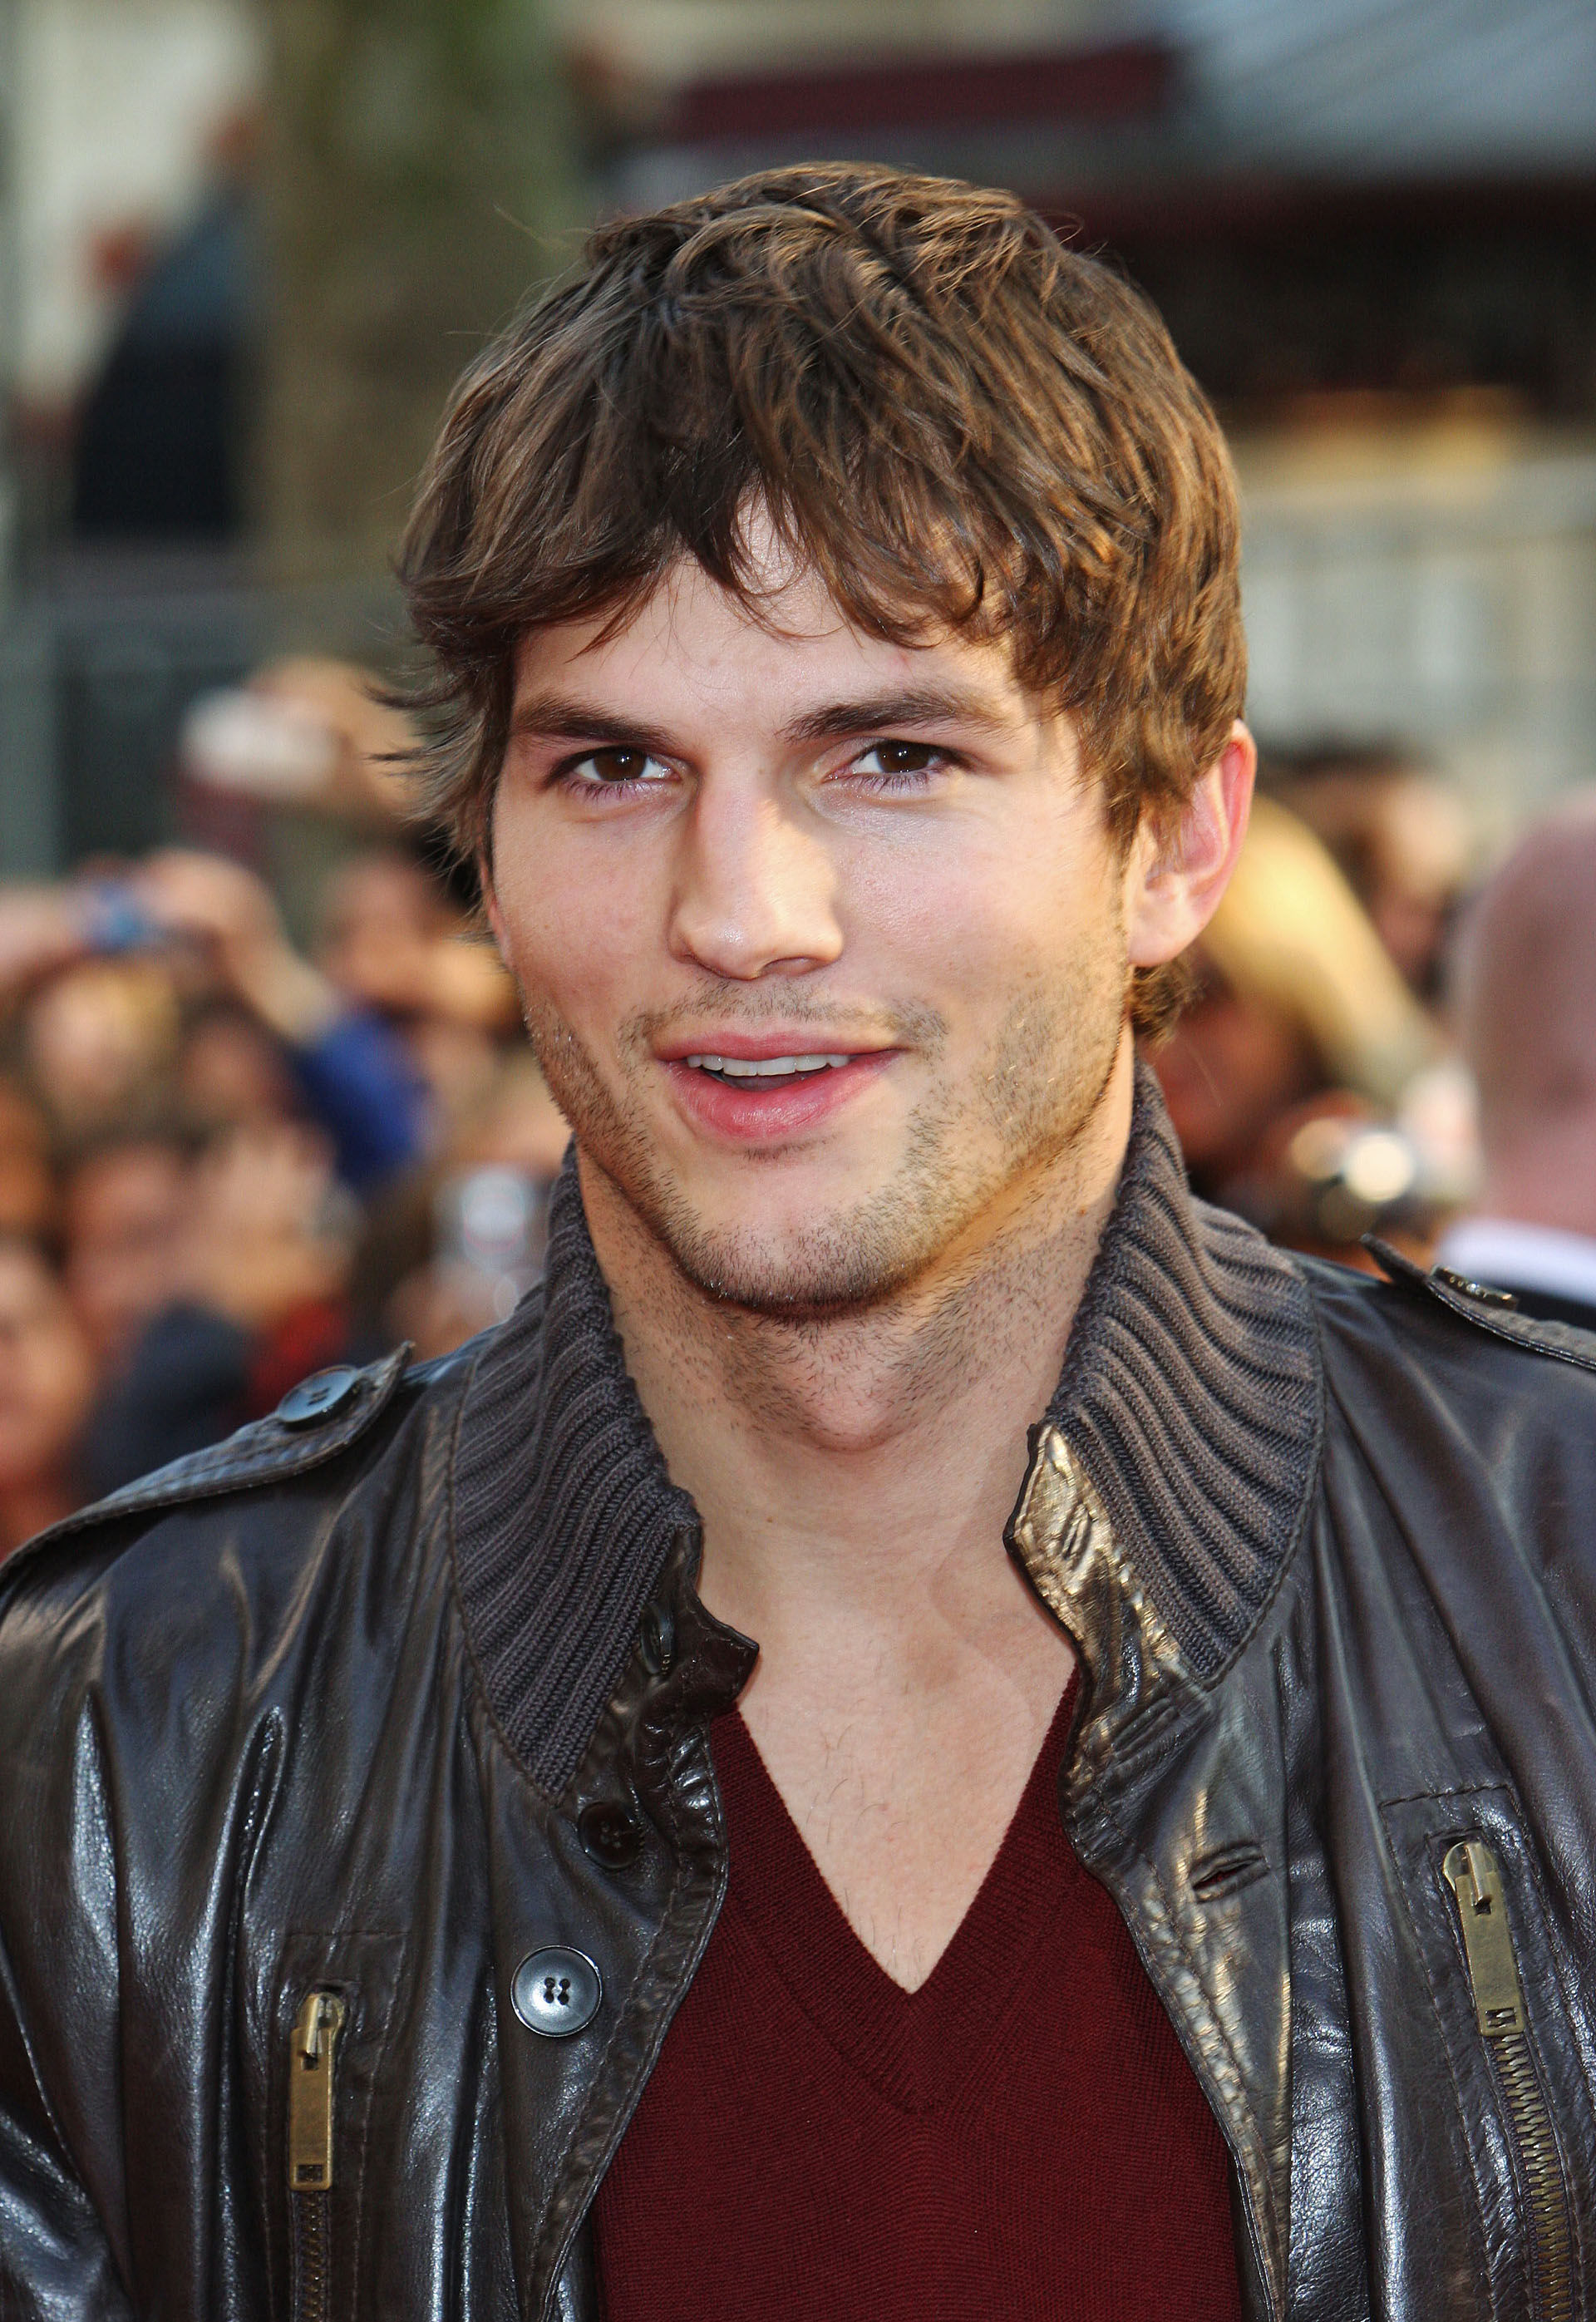 Kutcher Covers for Cameron